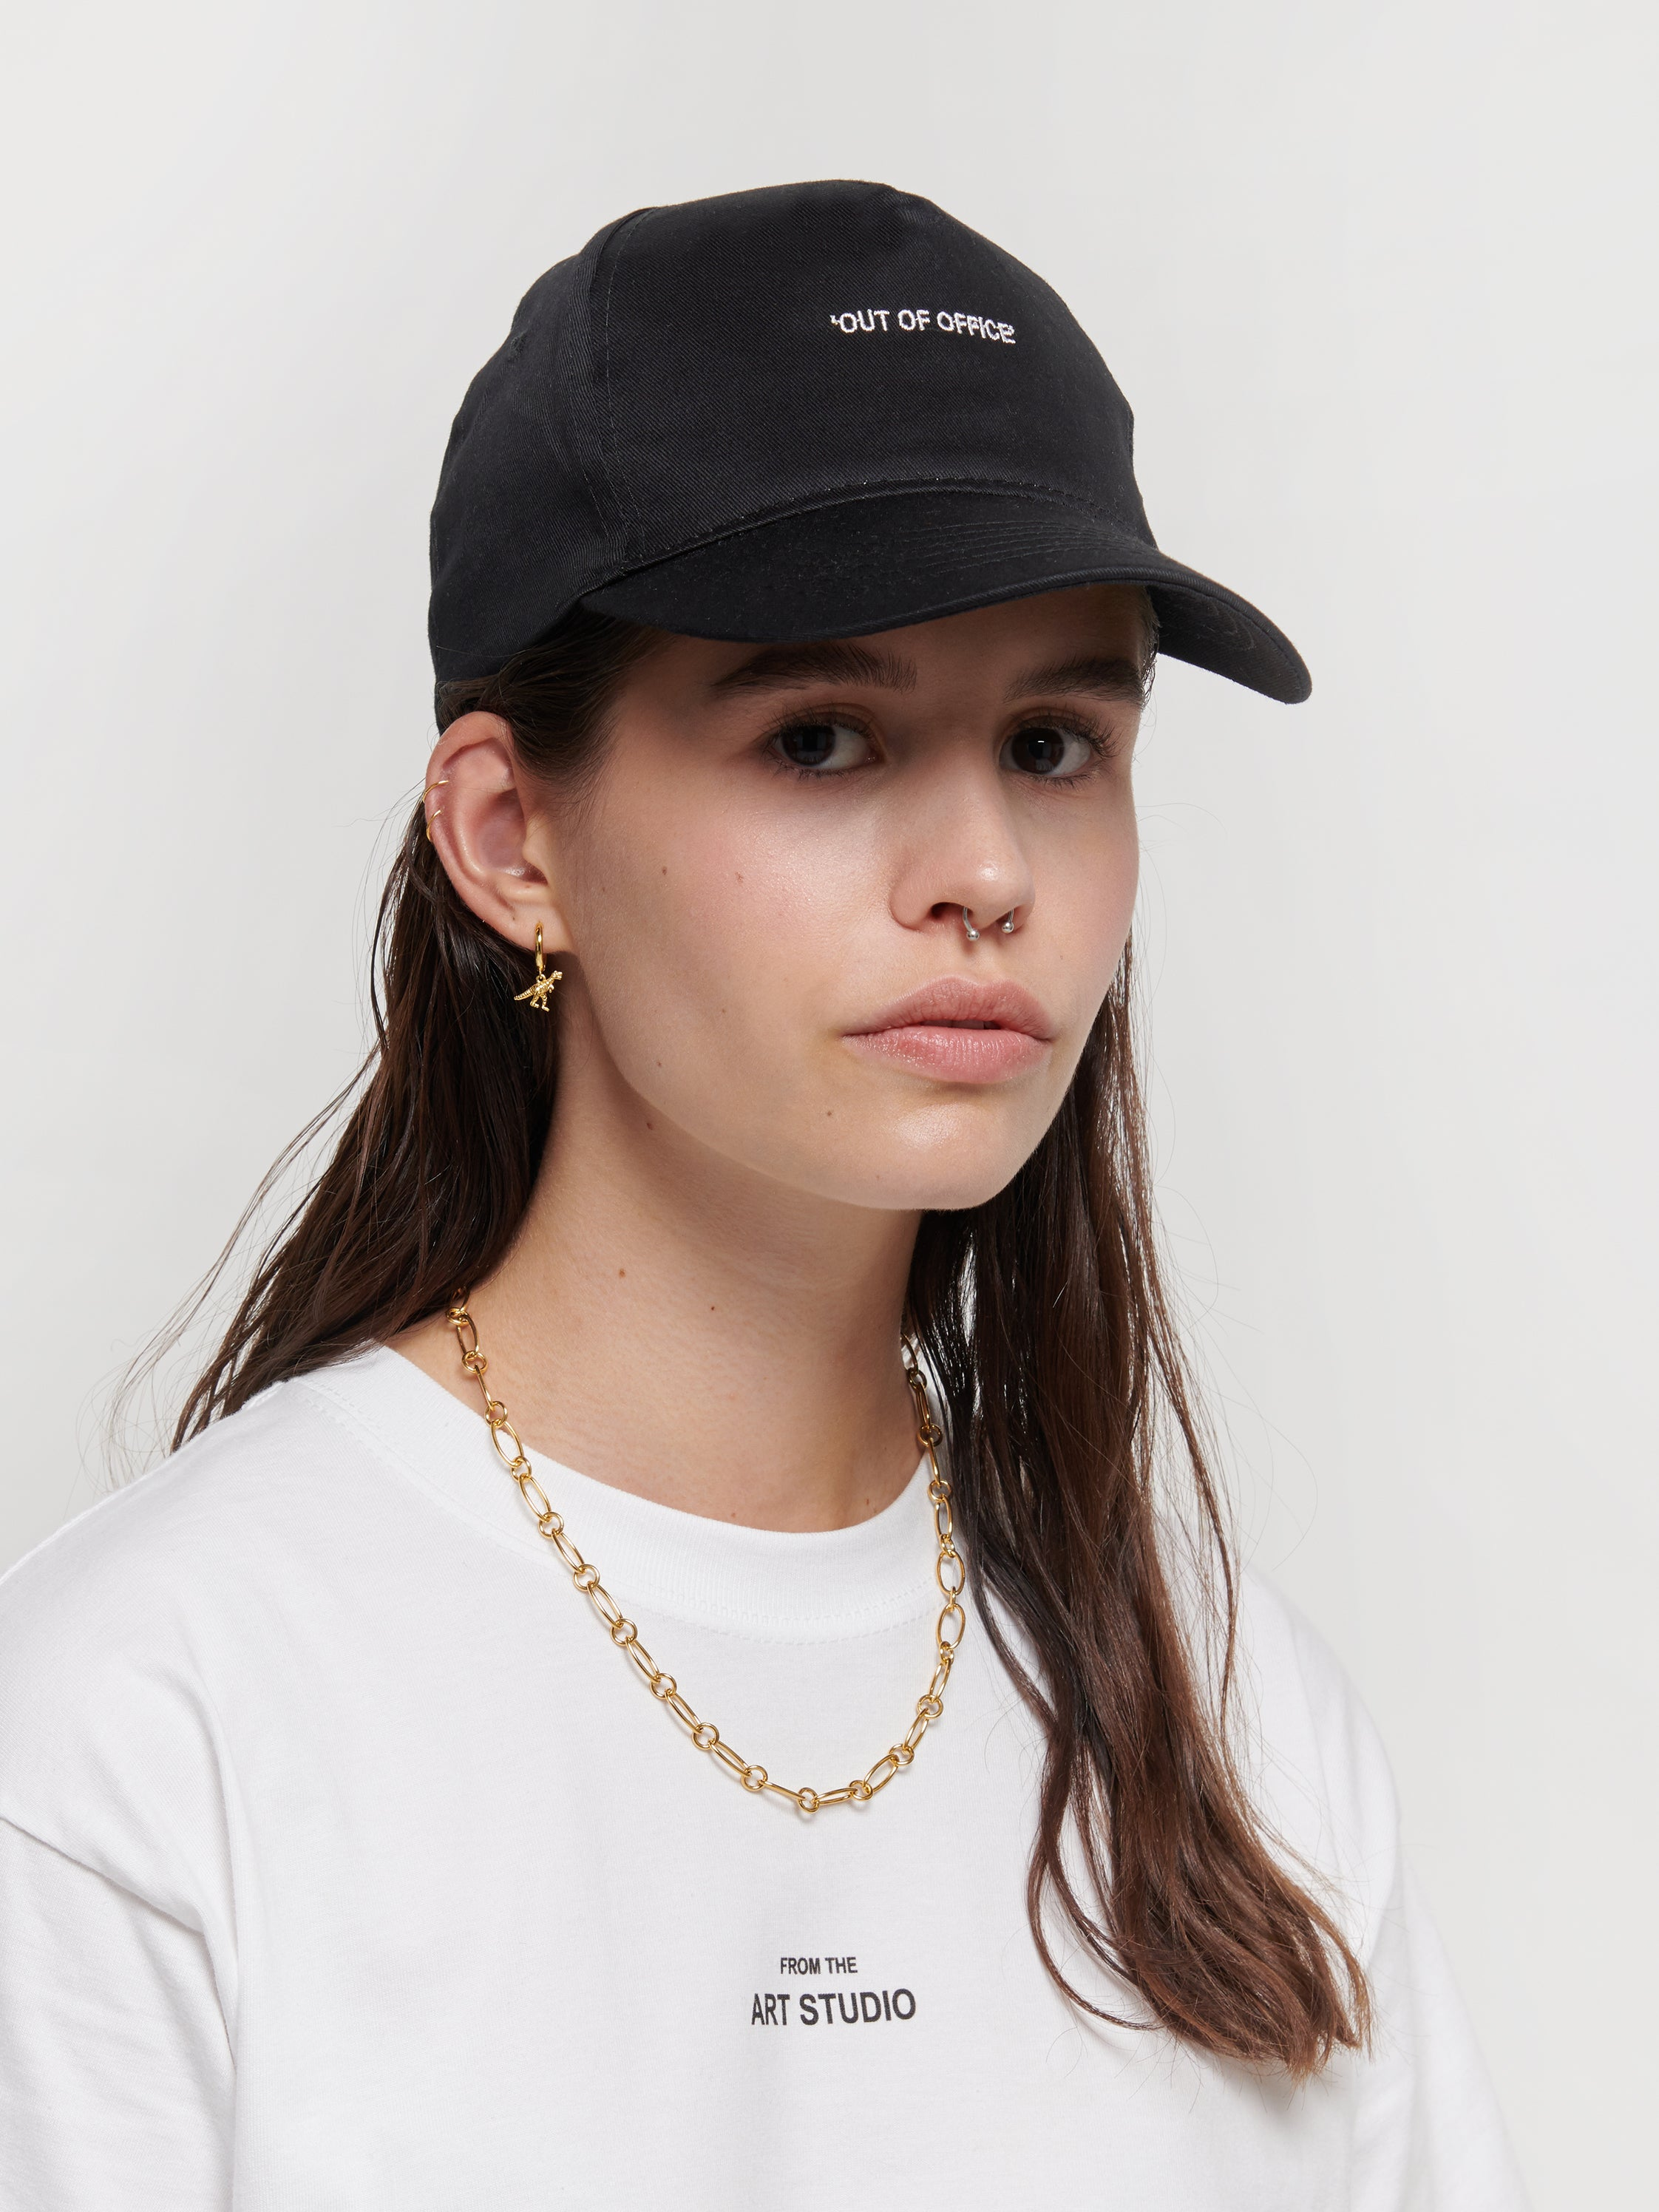 Organic black cap with 'OUT OF OFFICE' embroidery. Pair with any outfit for a casual look. The cap was locally designed in Luxembourg, the embroidery was made in Luxembourg and the bag was produced in China with FairWear certification.